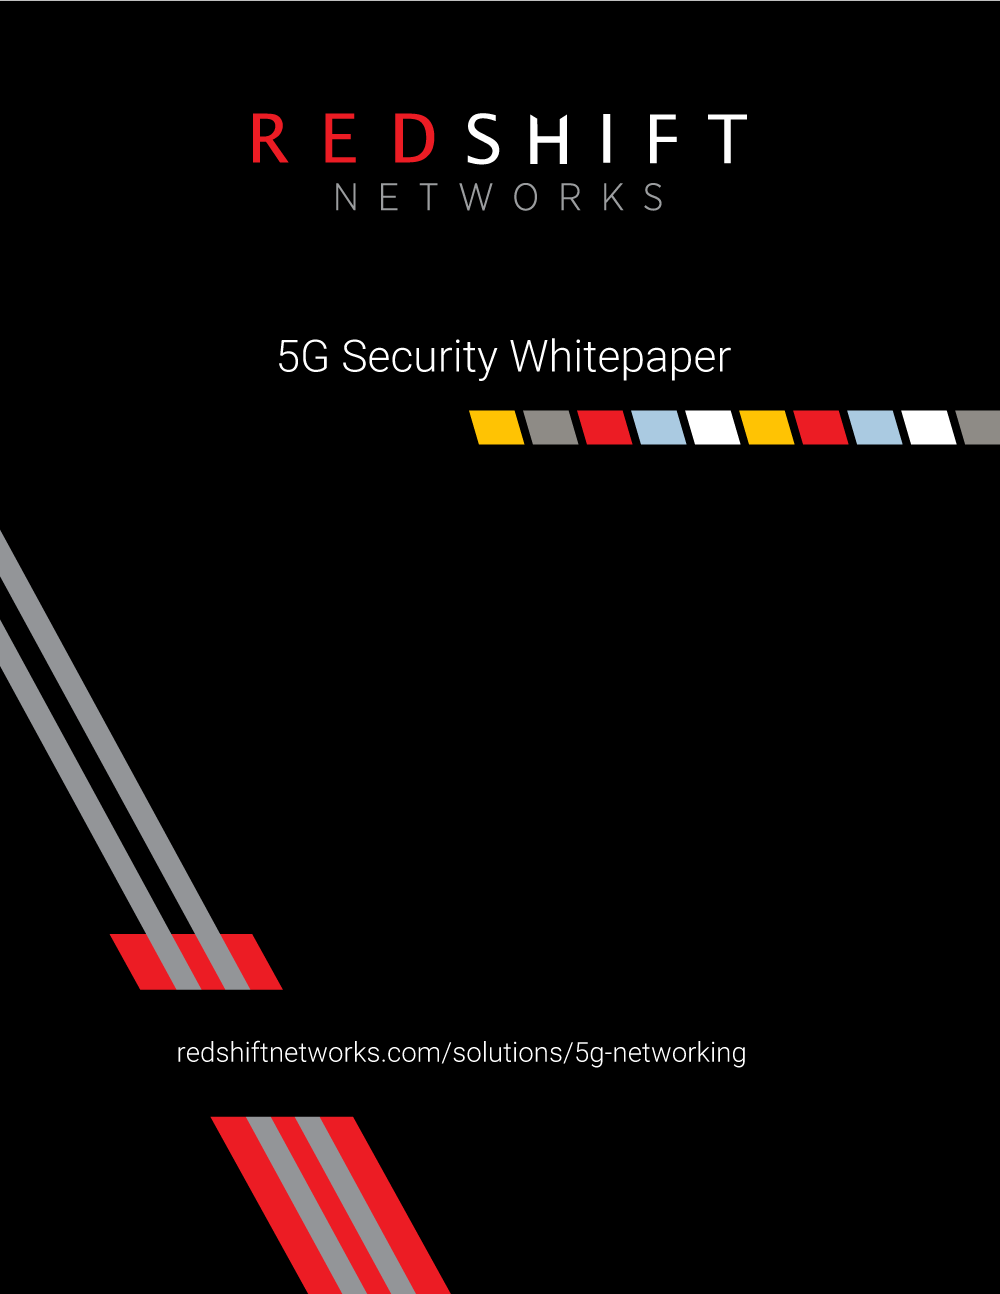 redshift-networks-5g-security-whitepaper-cover